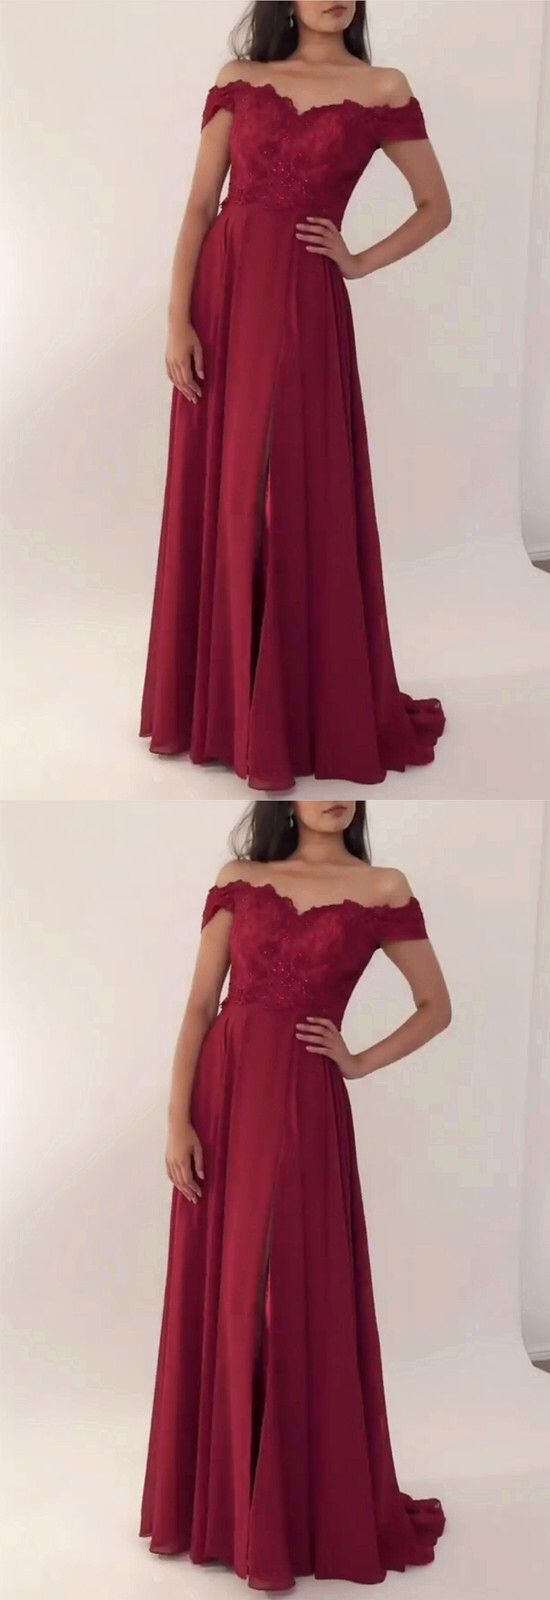 long burgundy bridesmaid dresses off the shoulder evening gowns